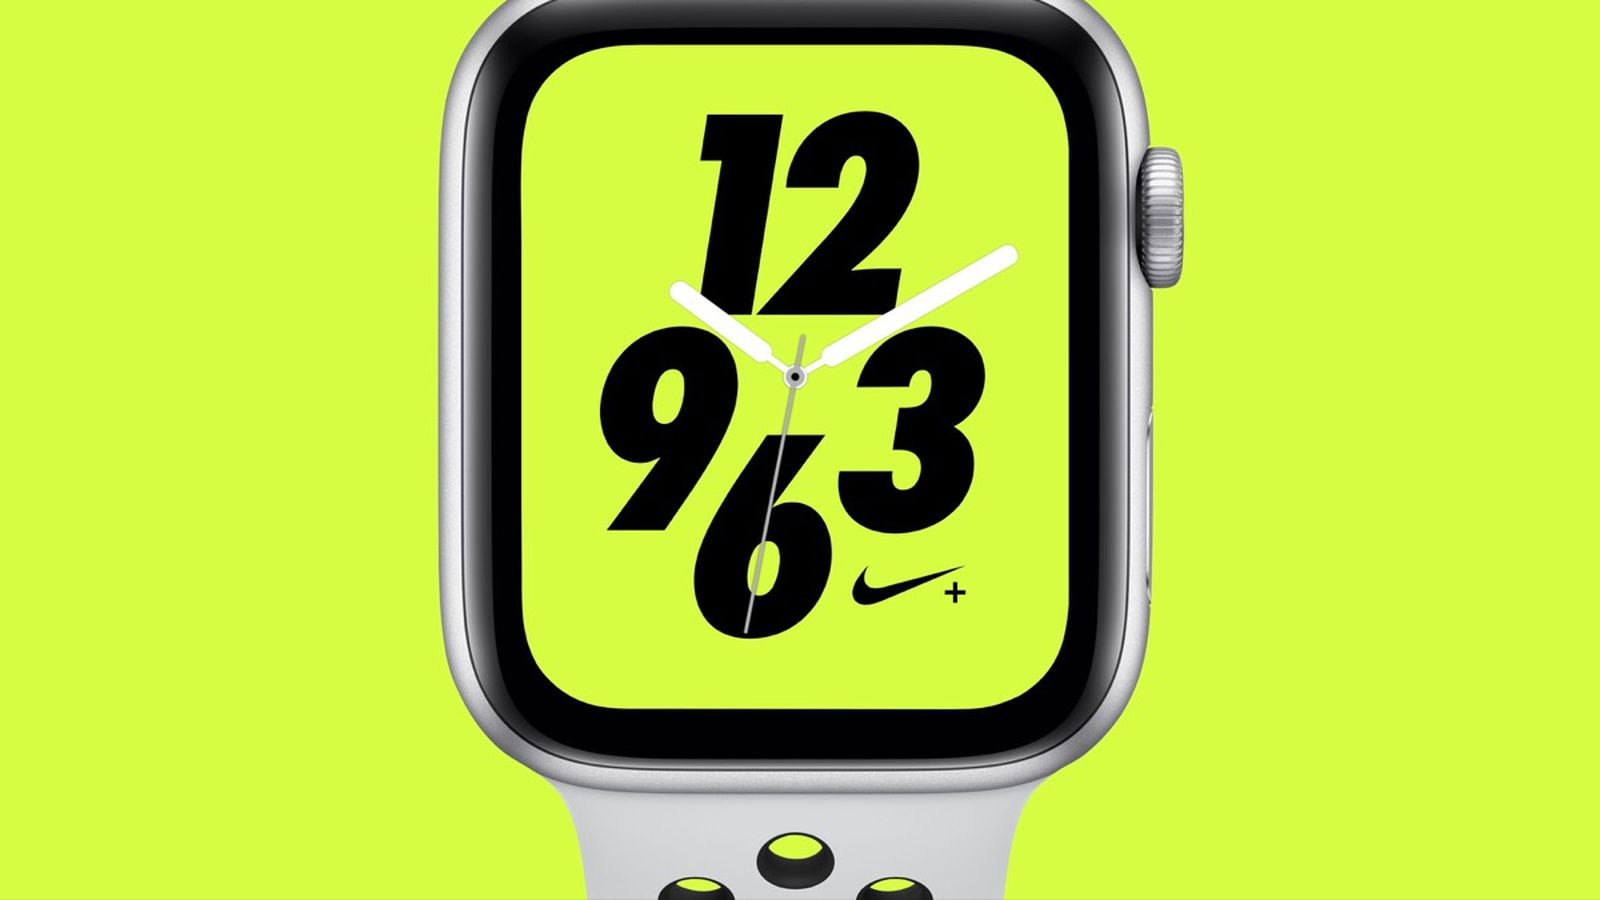 Salto verbo protestante  Apple Watch Series 4 Nike+ Models Have Slightly Later October 5 Launch Date  - MacRumors